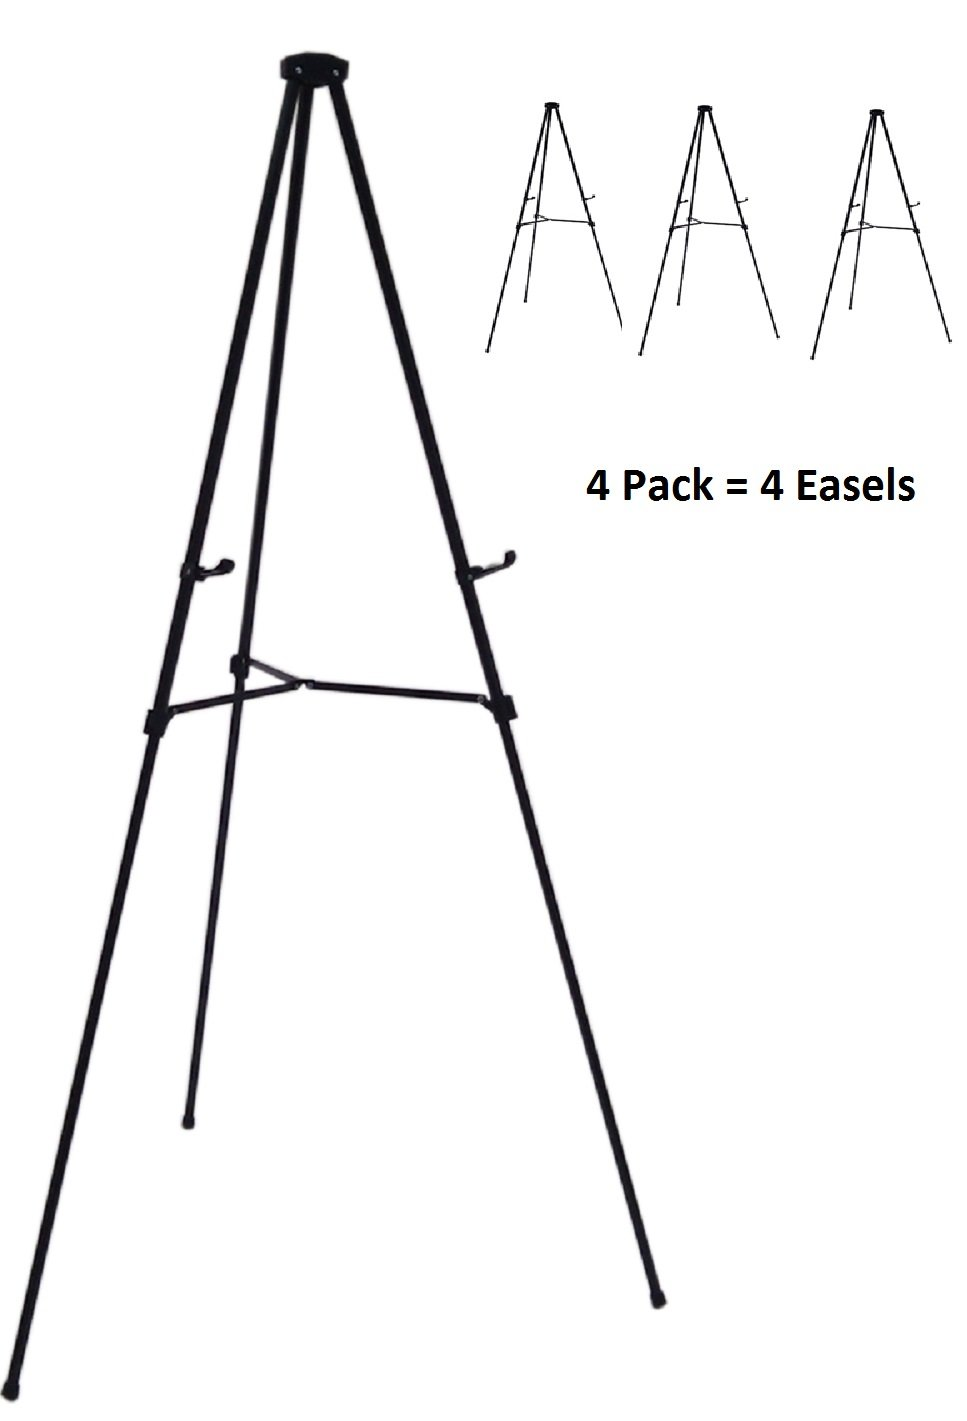 Pack of 4 Lightweight Aluminum Telescoping Display Easel, Black (4 pack) by Audio-Visual Direct (Image #1)